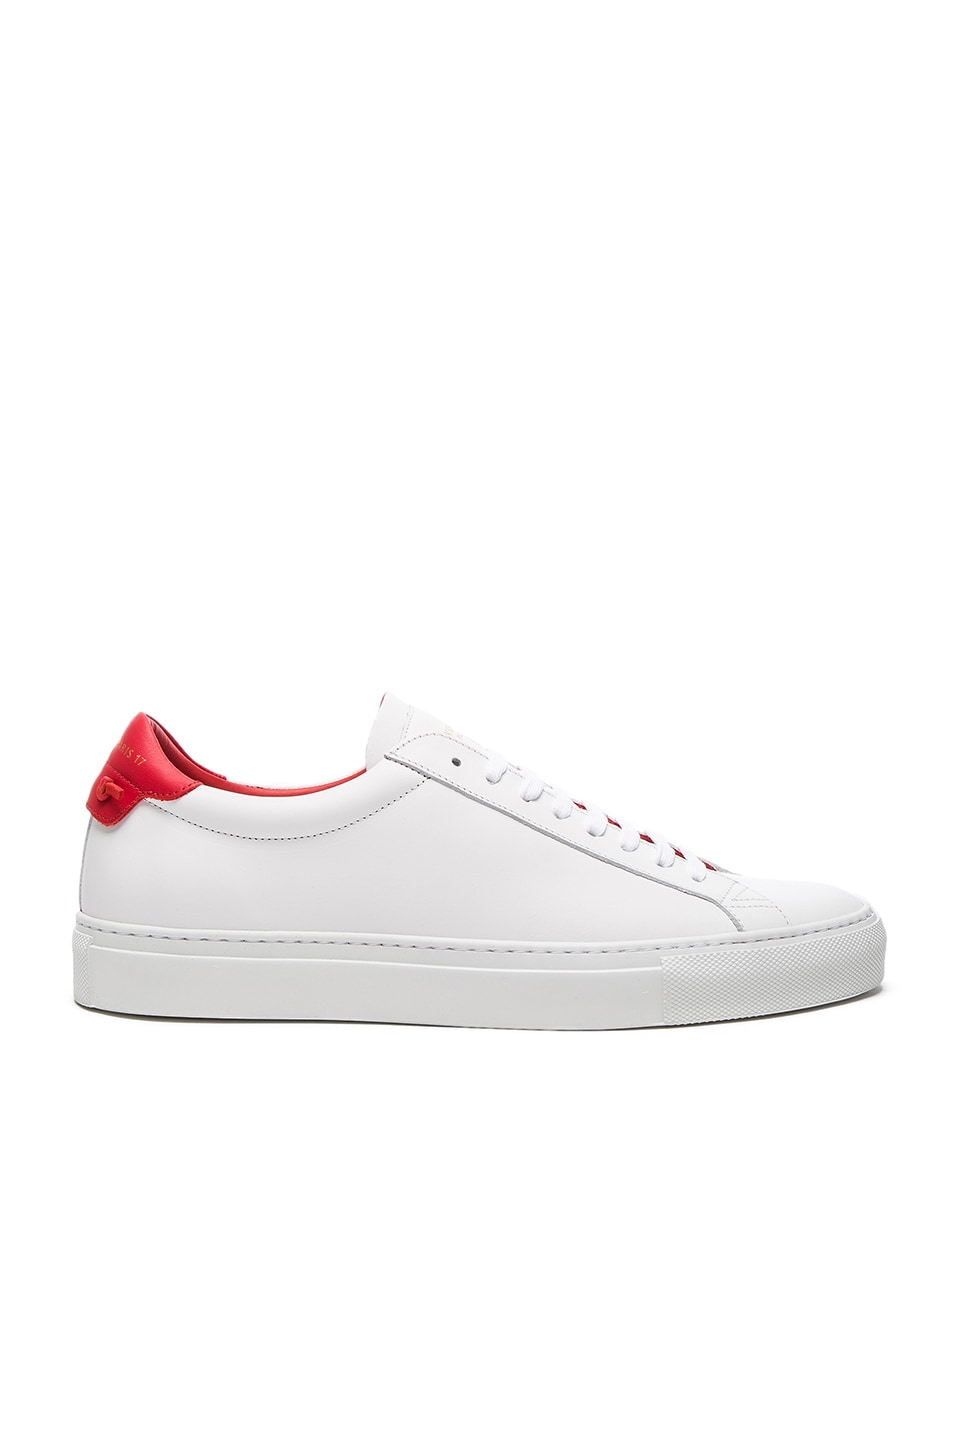 Sneaker URBAN STREET calfskin red white Givenchy